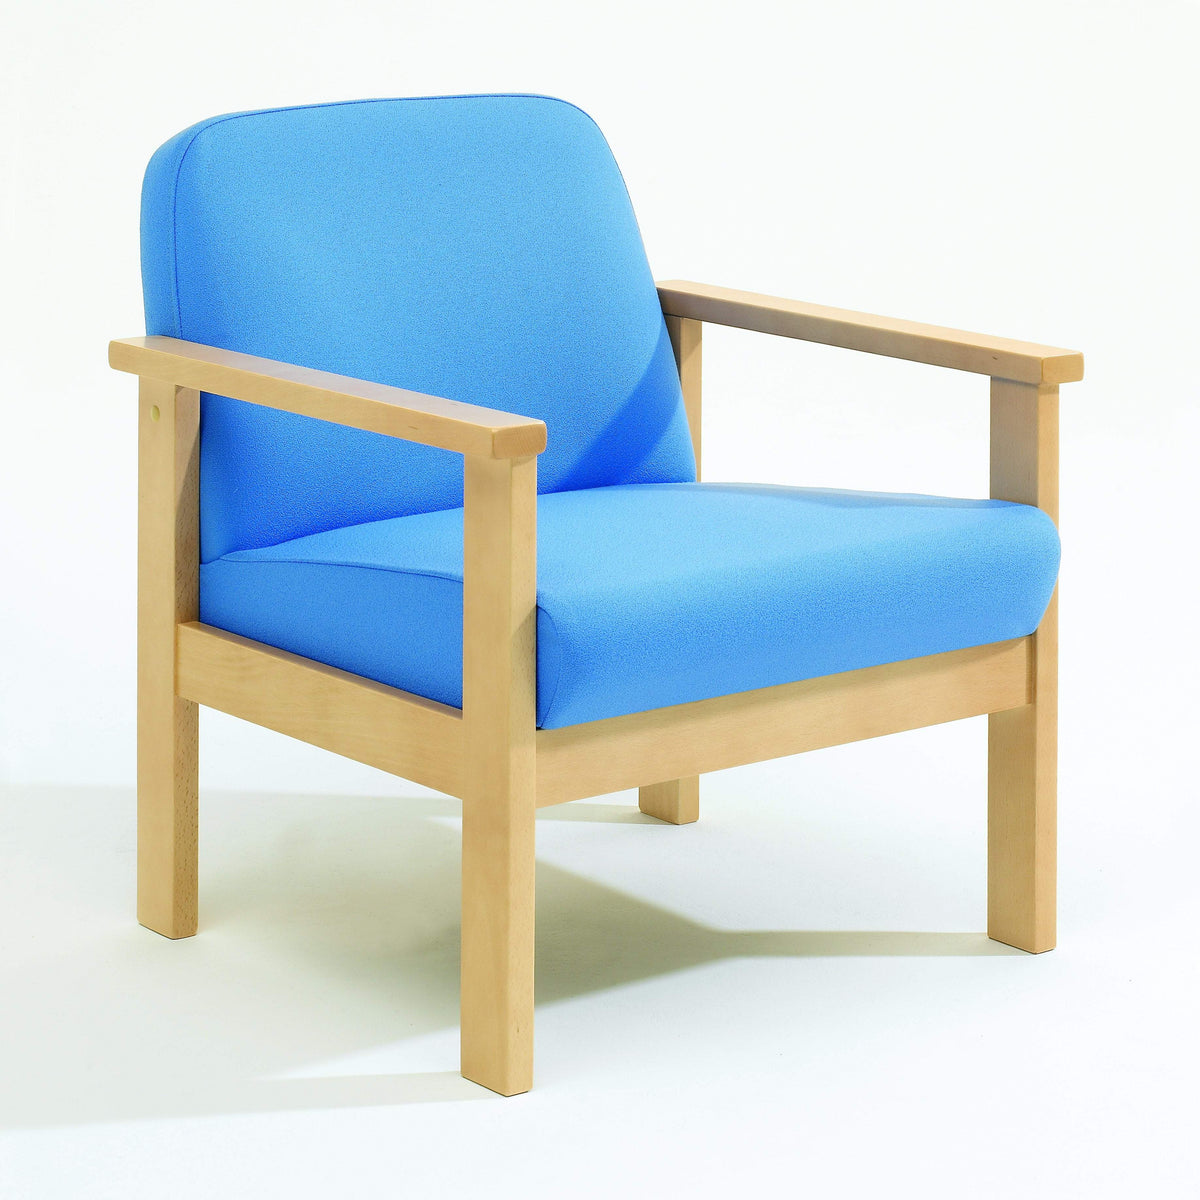 Soft Seating Low Back, Armchair Romsey Beech Frame Seating